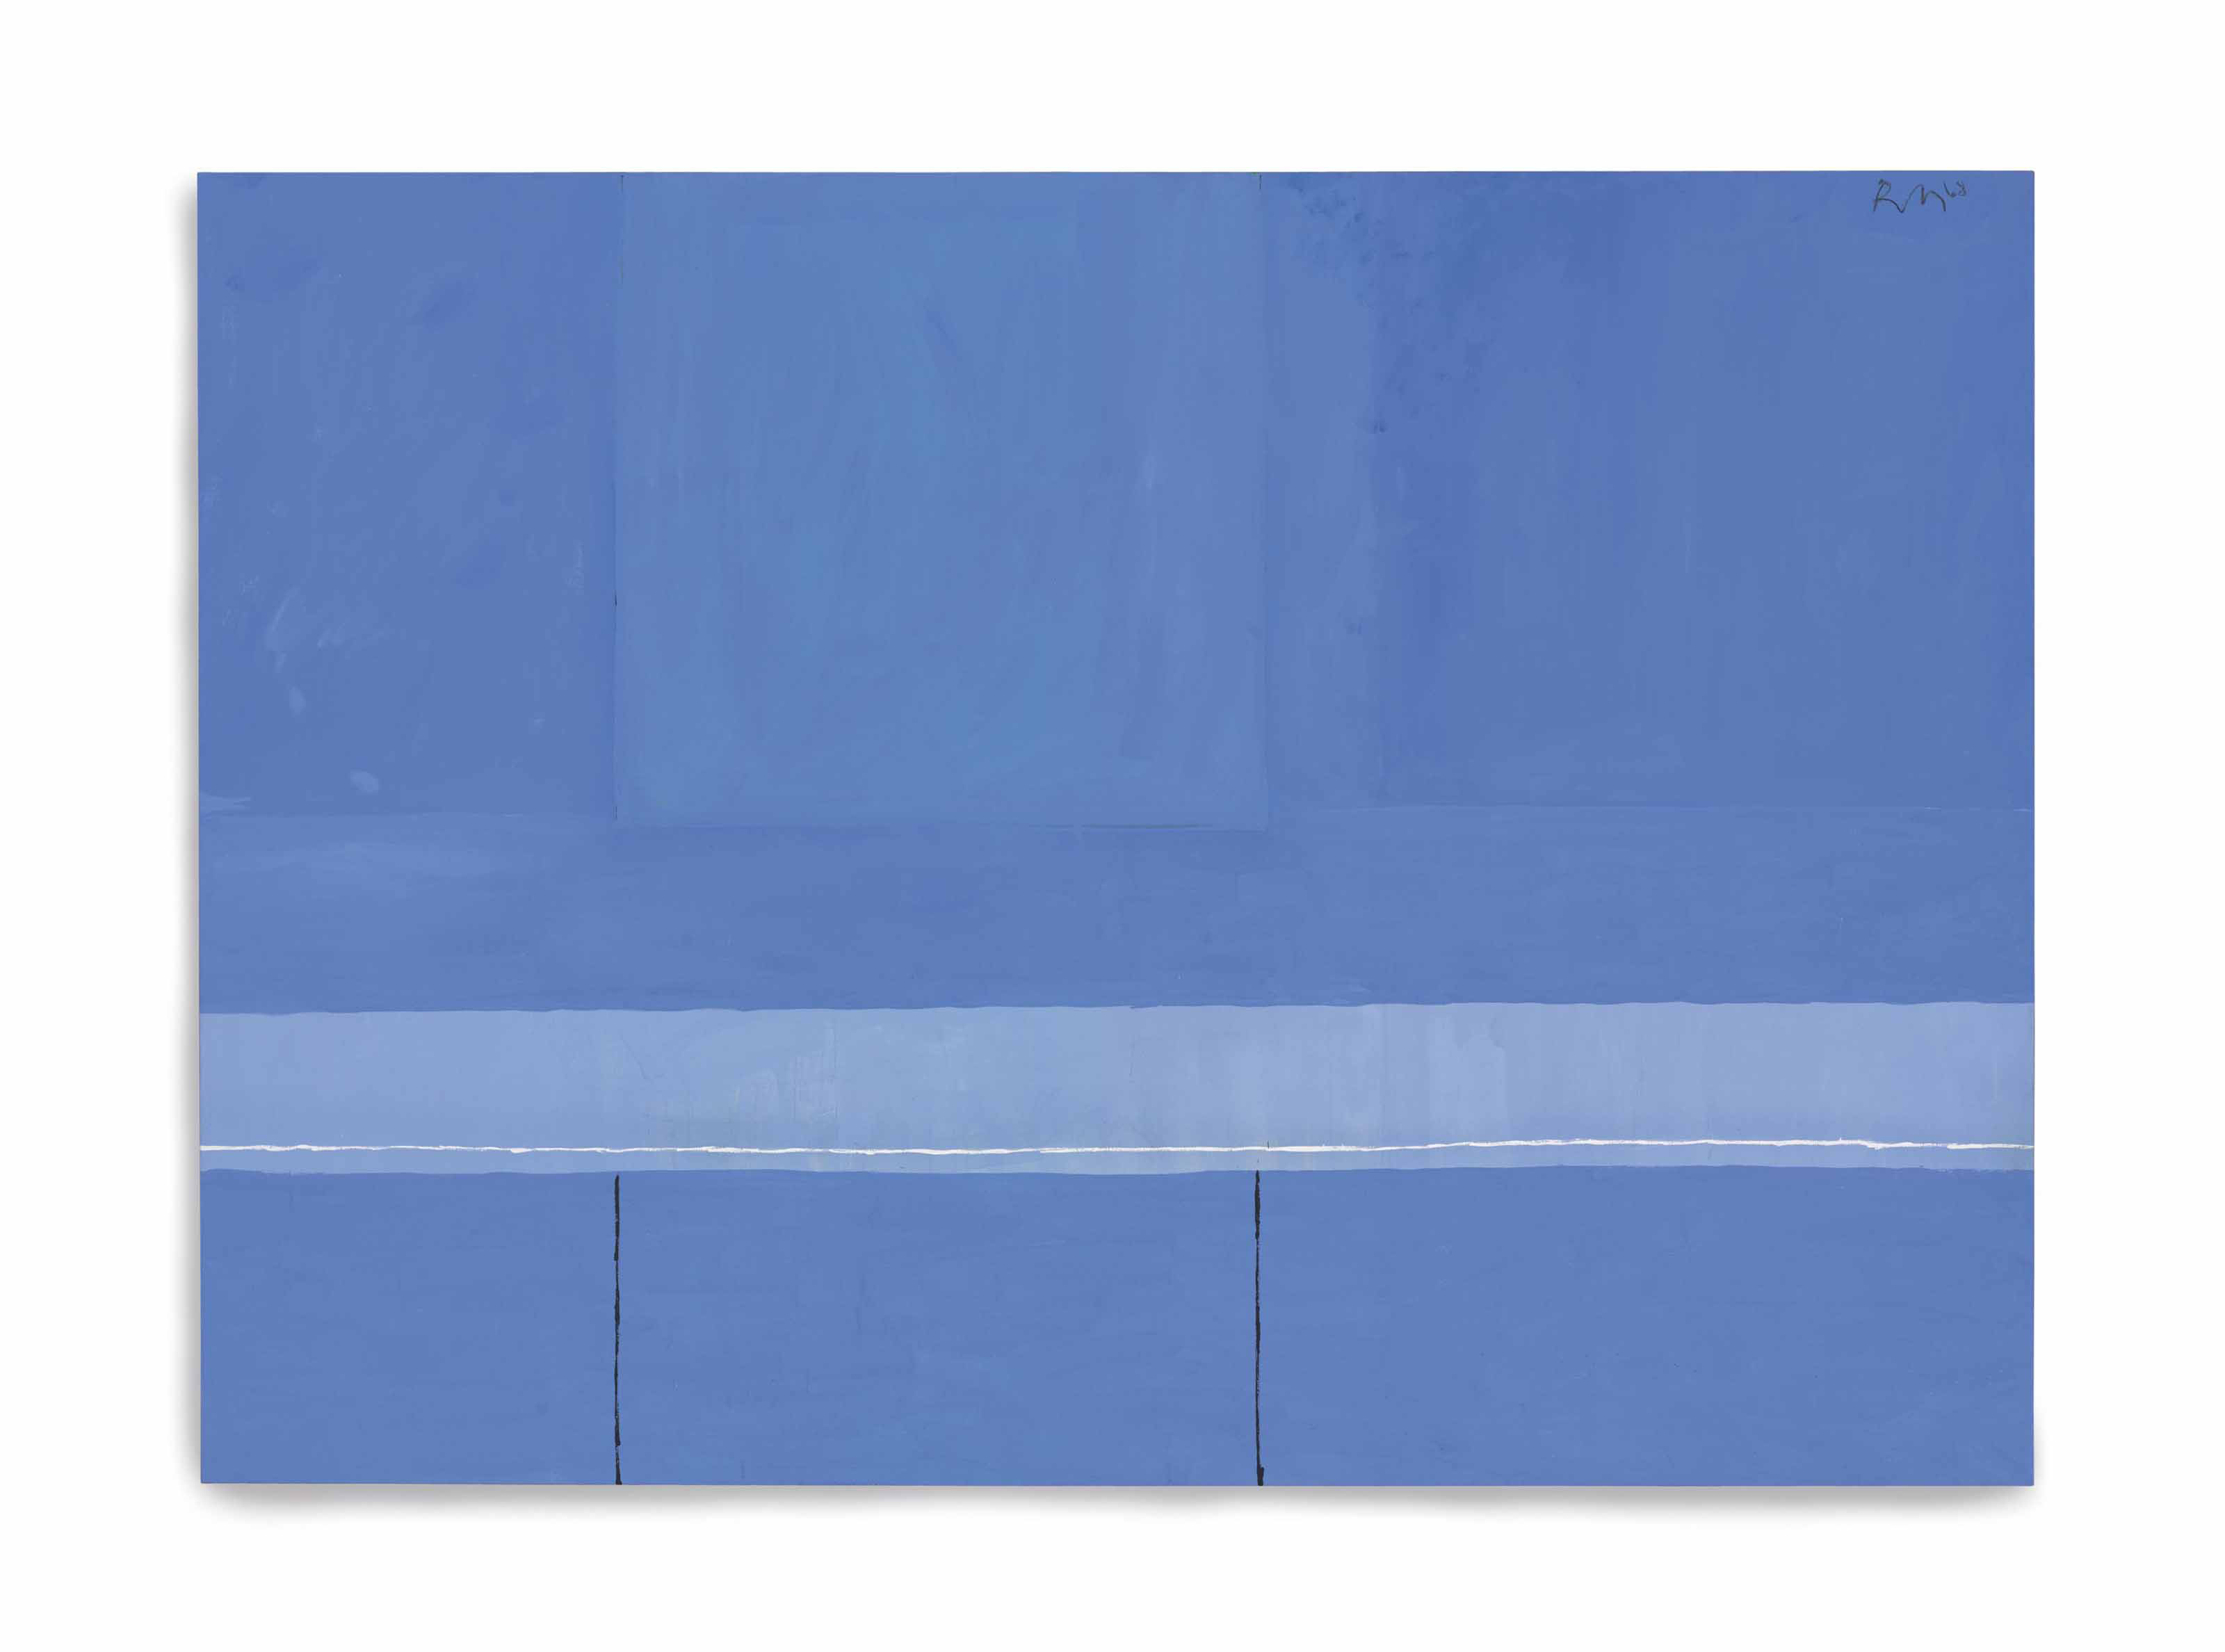 Open No. 23: In Blue with Variations of Ultramarine